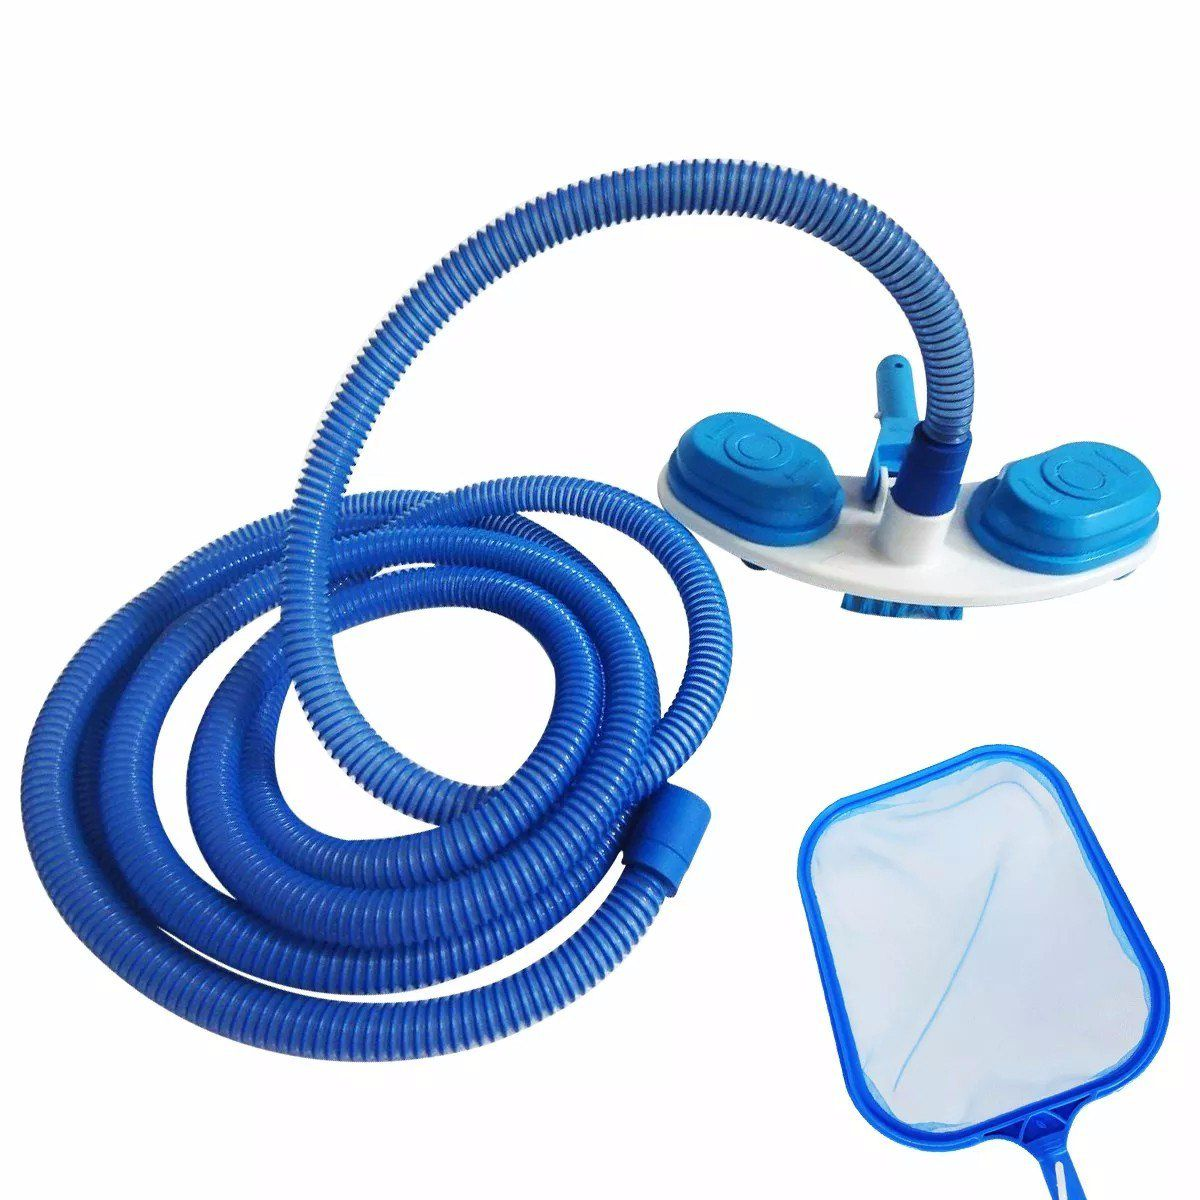 Kit de Limpeza para Piscina Aboveground - Sodramar